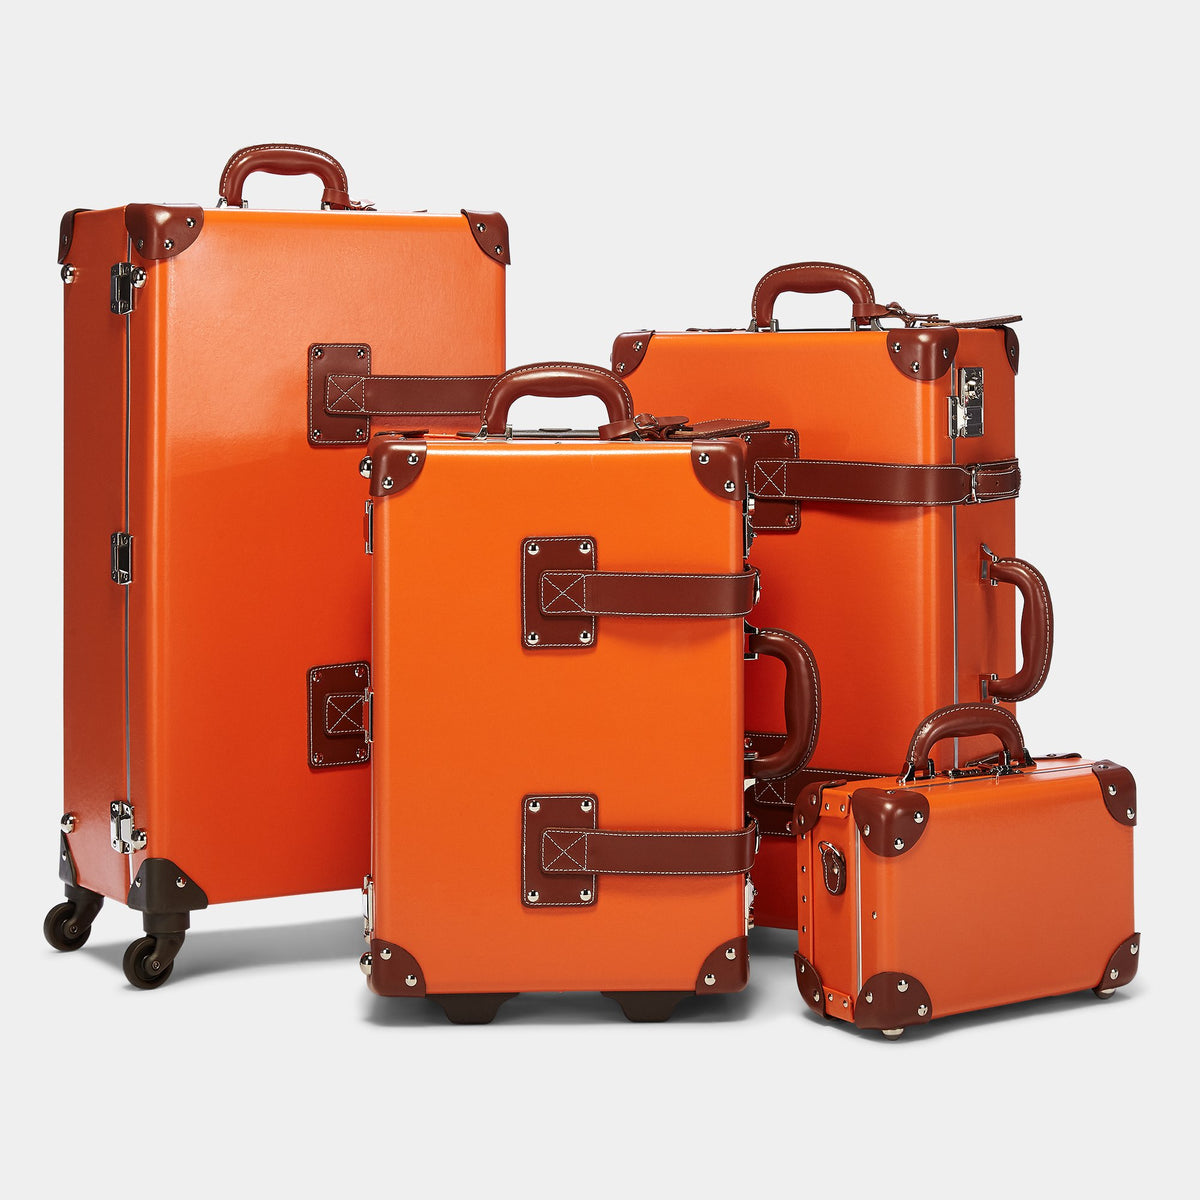 The Anthropologist Stowaway in Orange - Vintage Style Leather Case - Alongside matching cases from the Anthropologist Orange collection